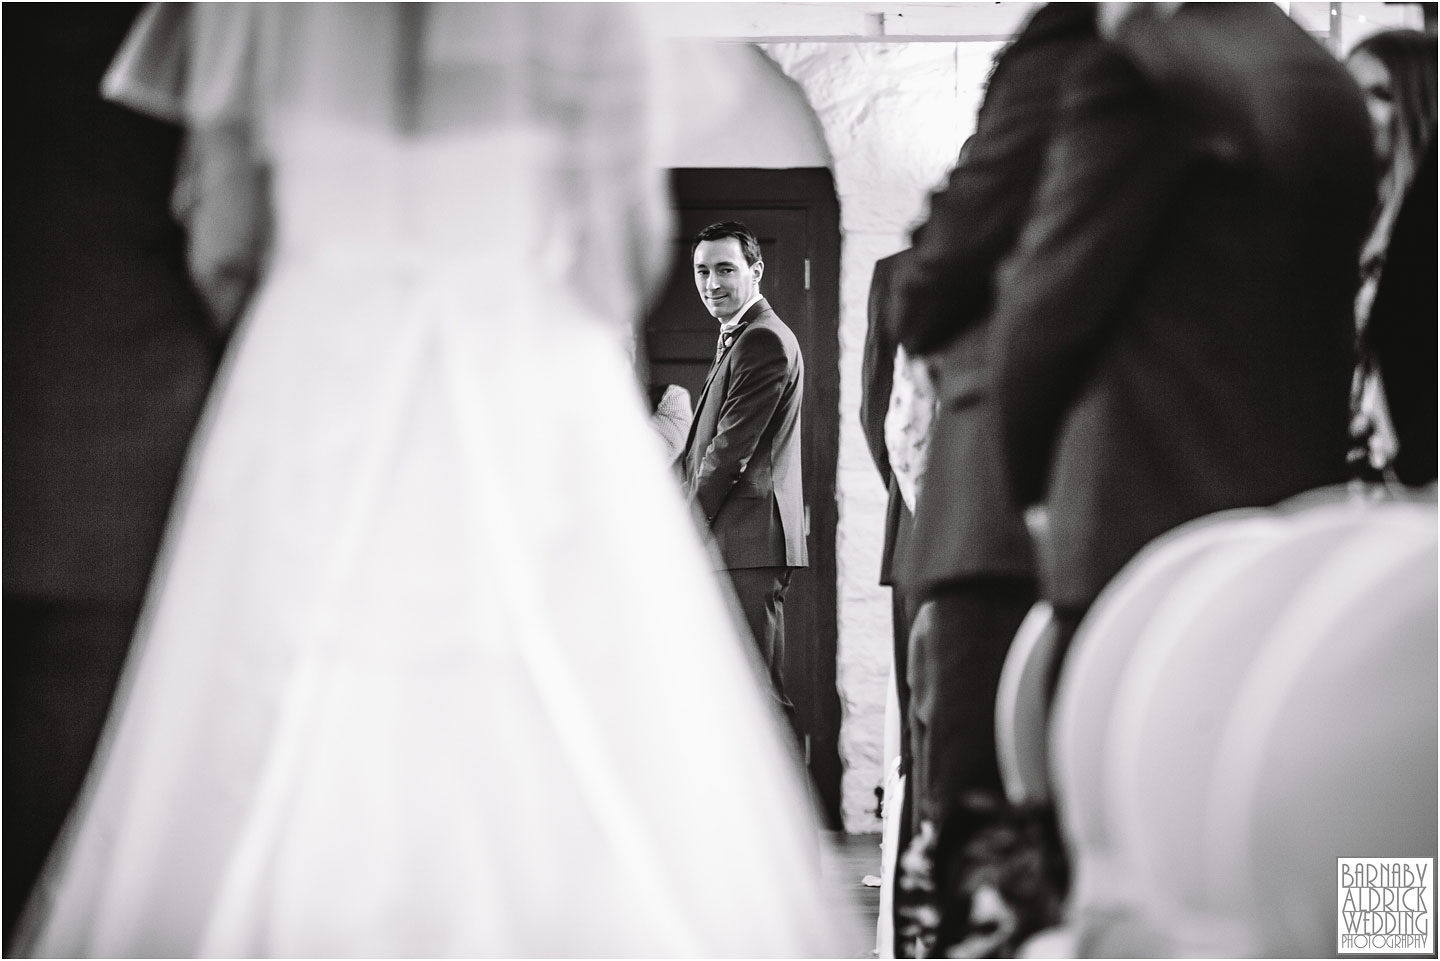 A groom watches the brides entrance at their wedding at Standedge Tunnel and Visitor Centre in Marsden